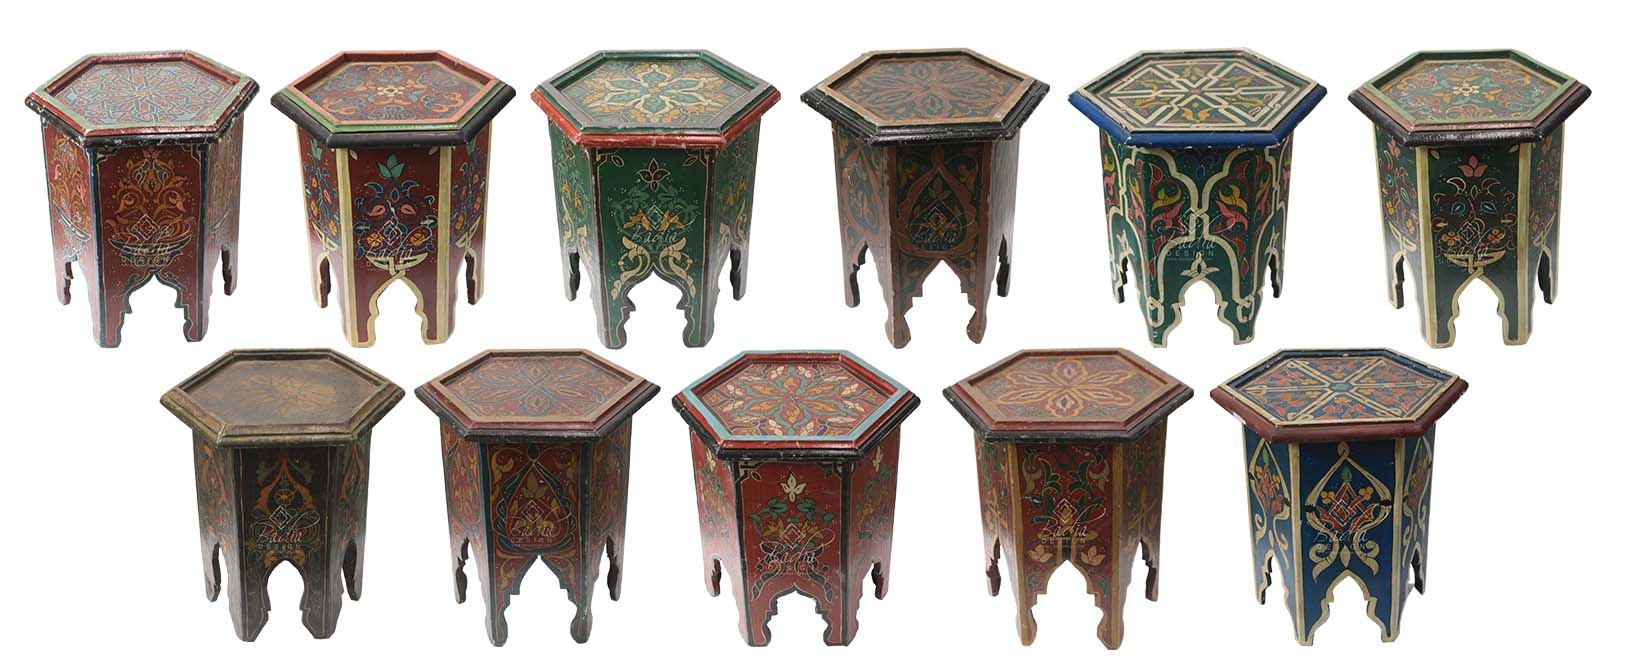 small-moroccan-hand-painted-side-table-hp004.jpg